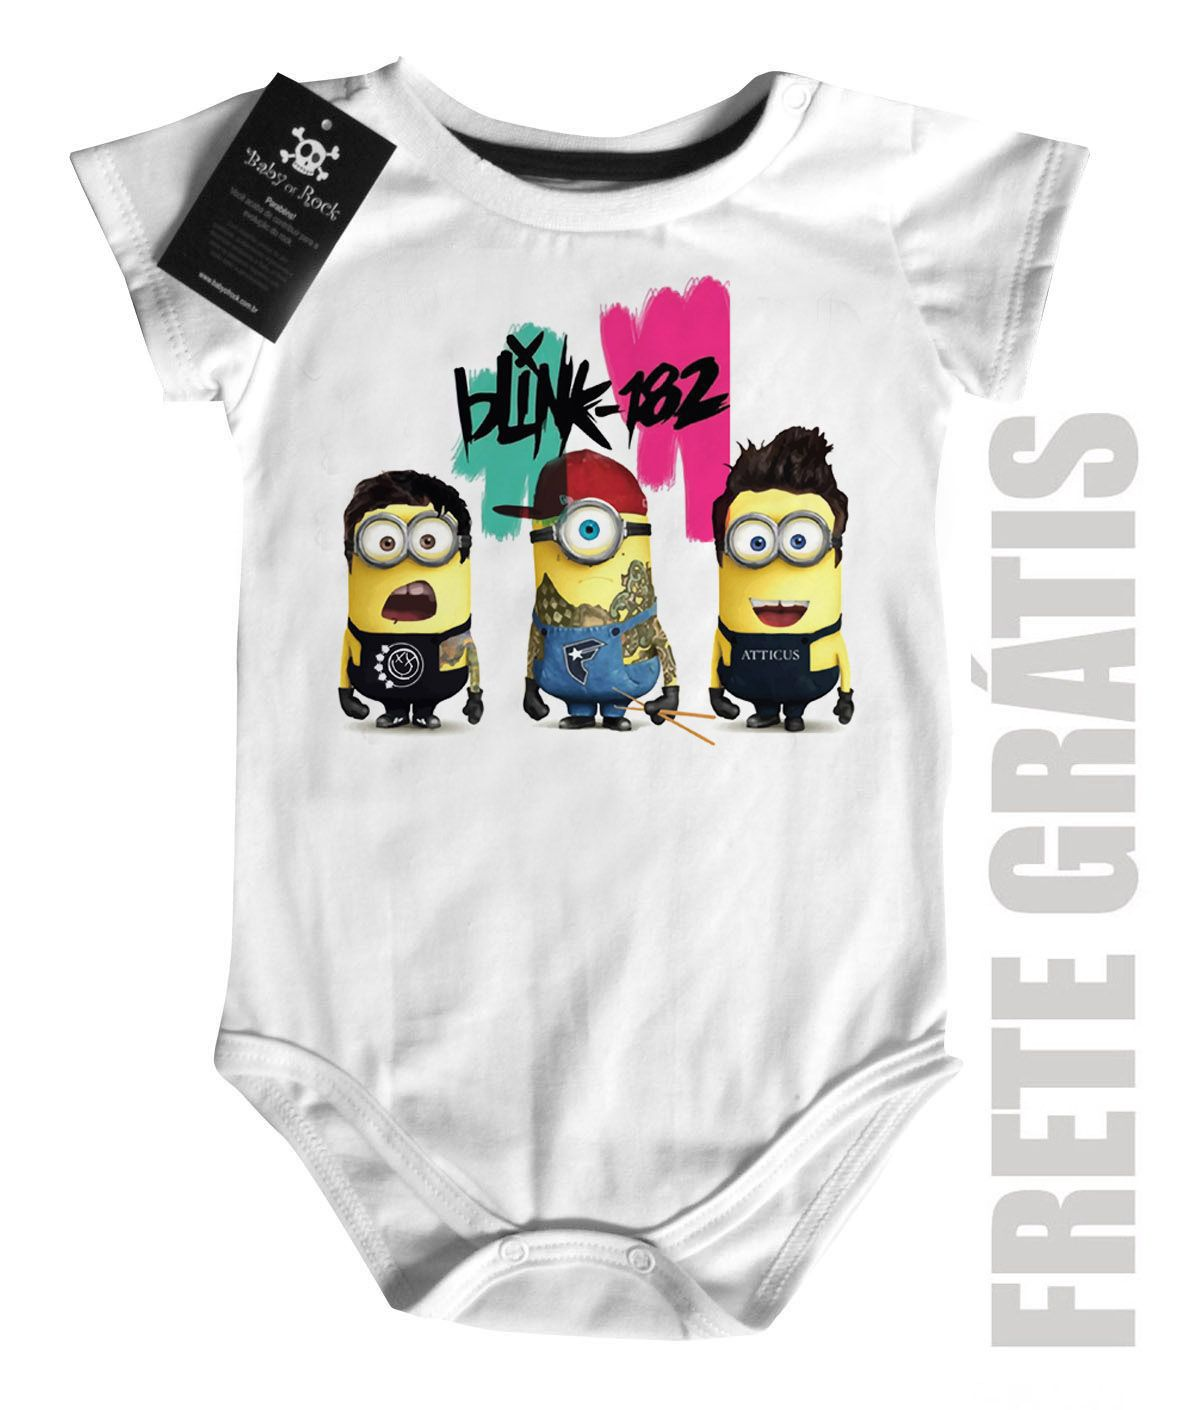 Body  Rock infantil Blink 182 Minions - White  - Baby Monster S/A